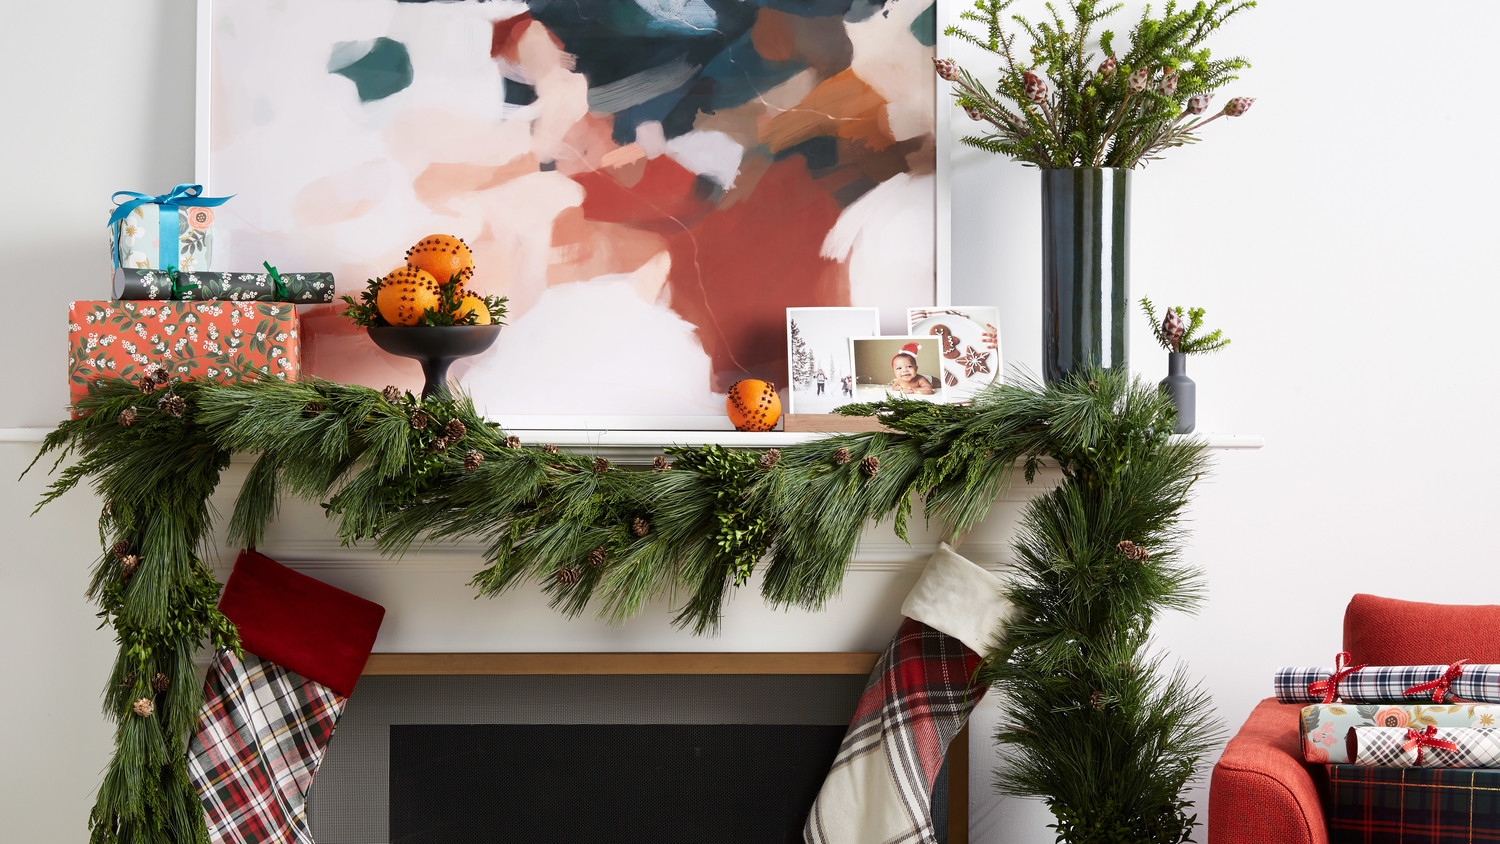 mantle decorations with painting pedestal bowl greens